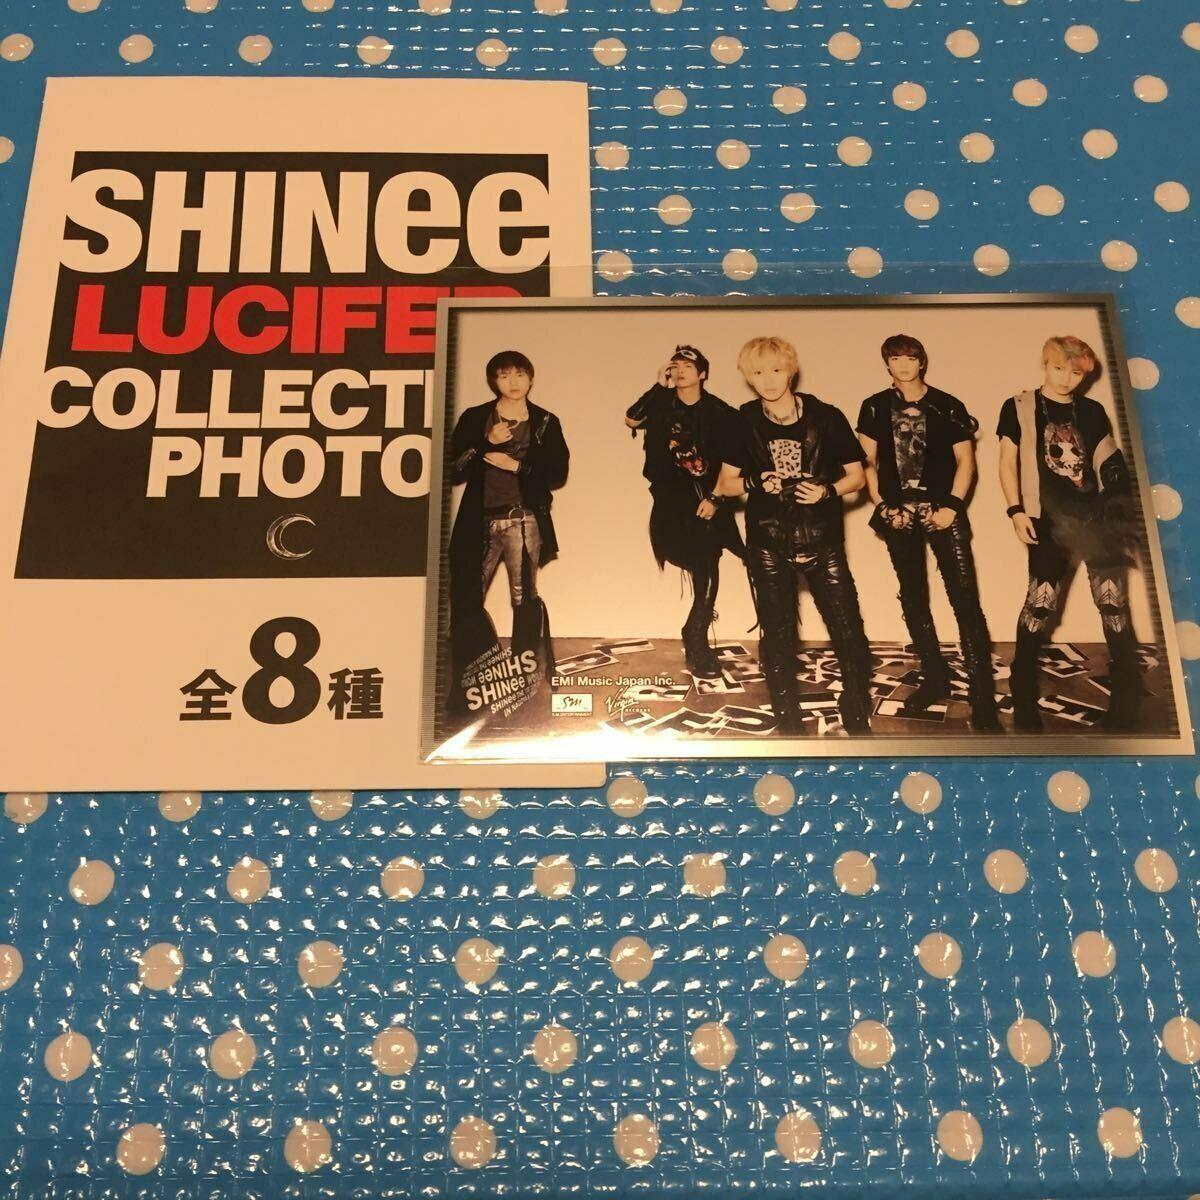 SHINee Raw Photo Lucifer Release Event Limited Discount